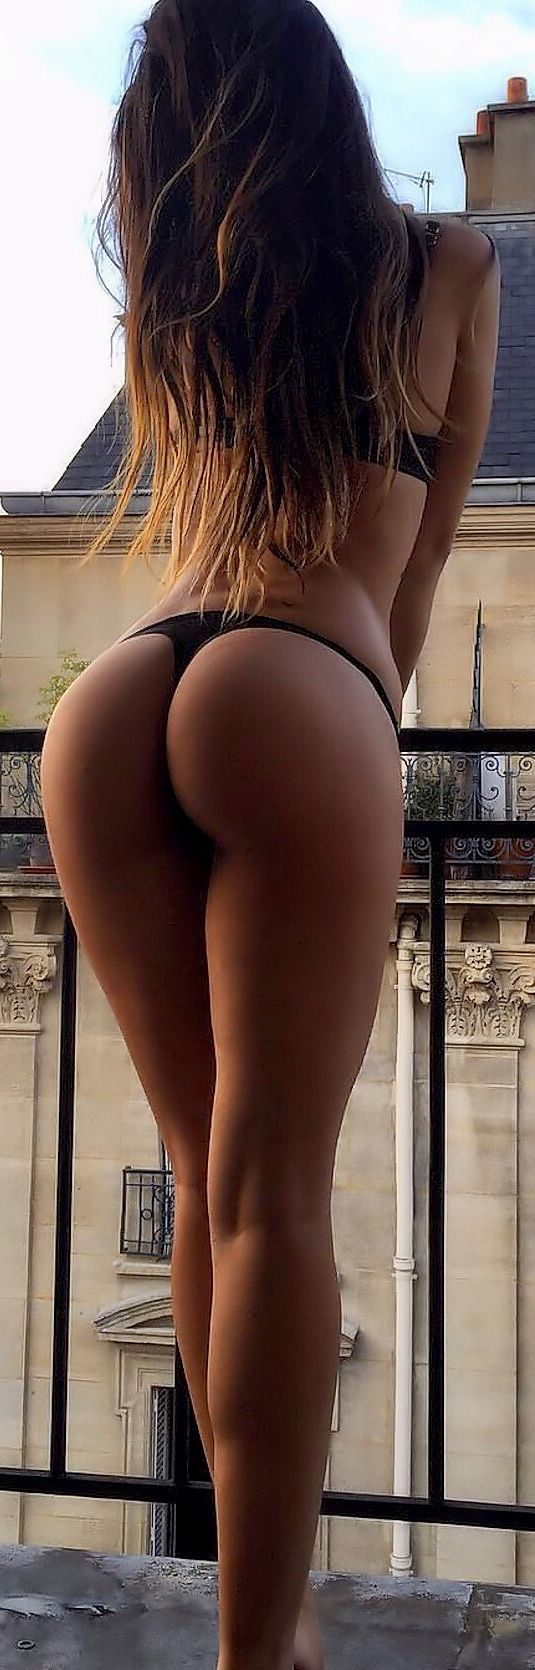 great ass | hottest eye candy | pinterest | nice, rear view and girls